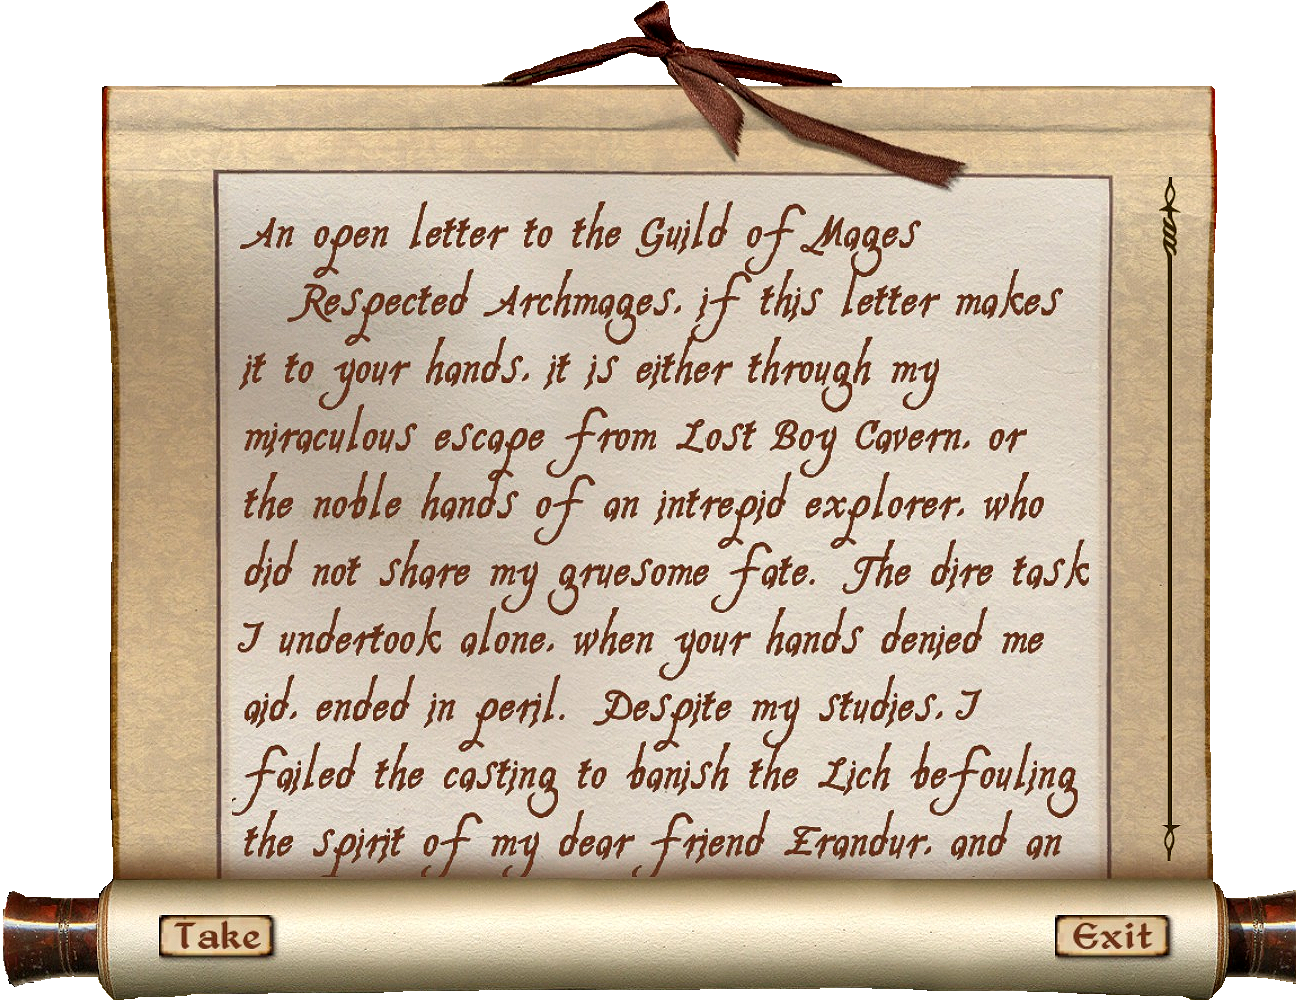 Png letter. Image letters to the